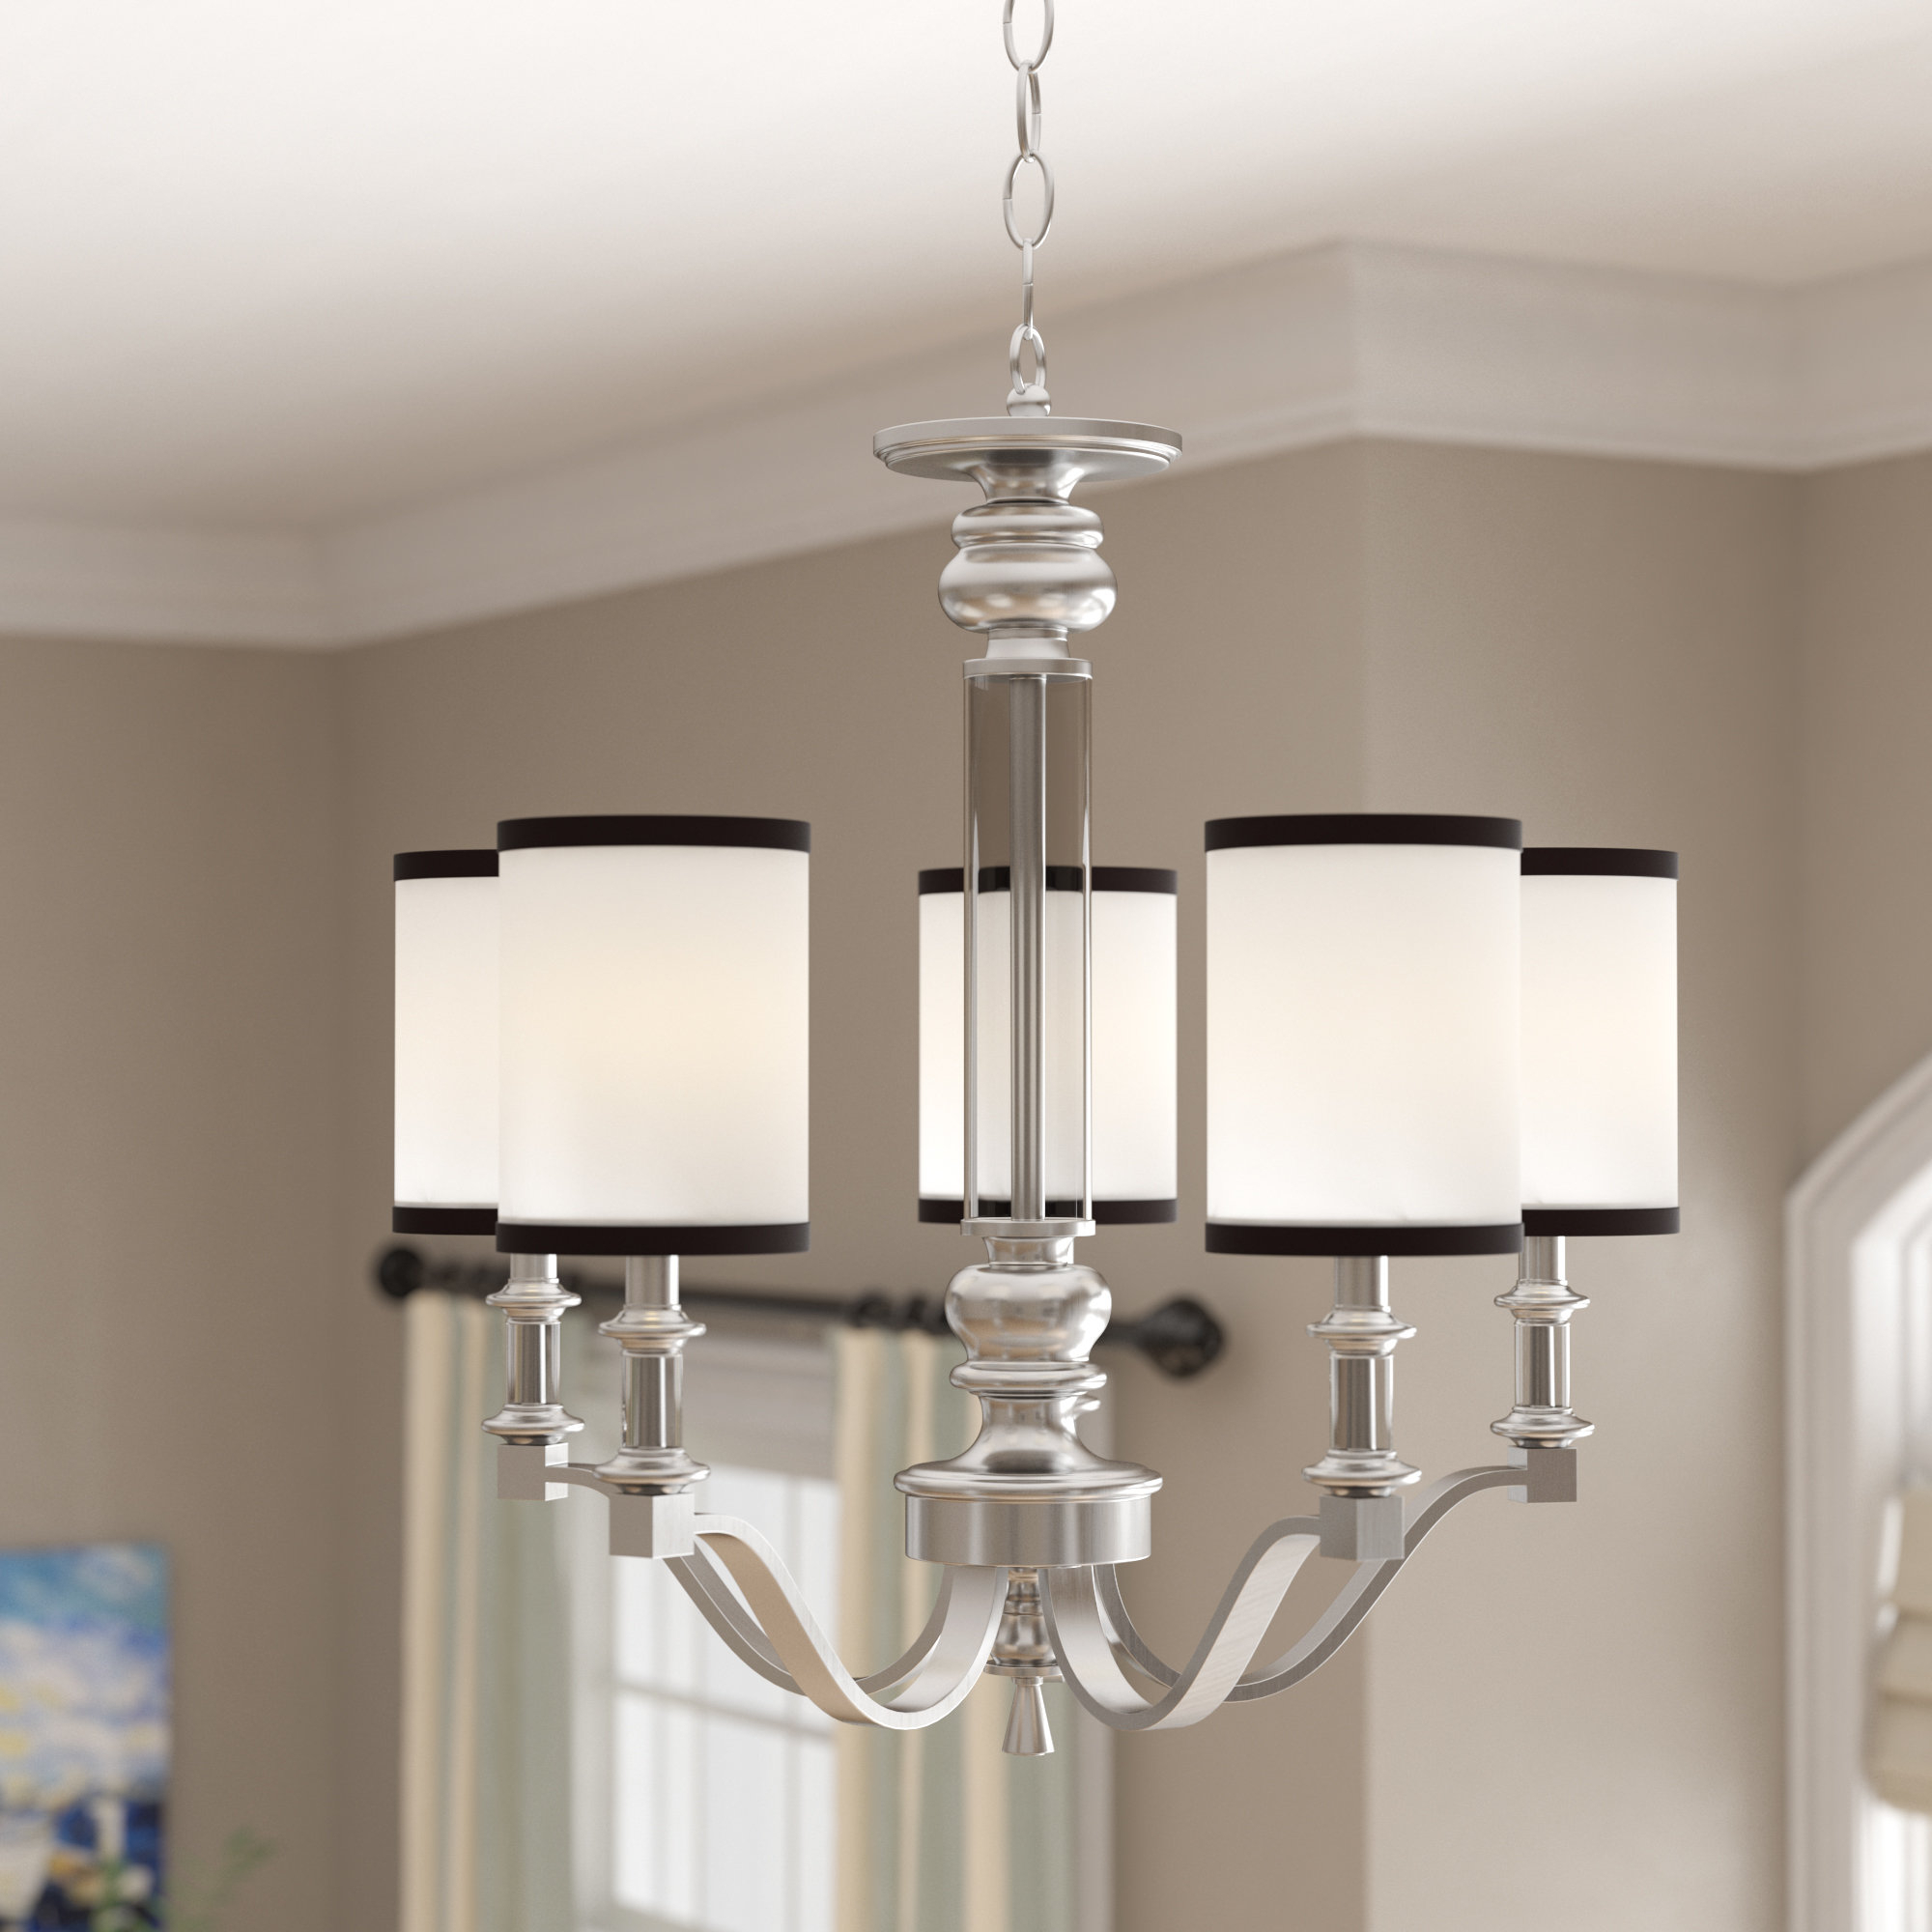 Pfeffer 5 Light Shaded Chandelier With Regard To Fashionable Suki 5 Light Shaded Chandeliers (View 5 of 25)